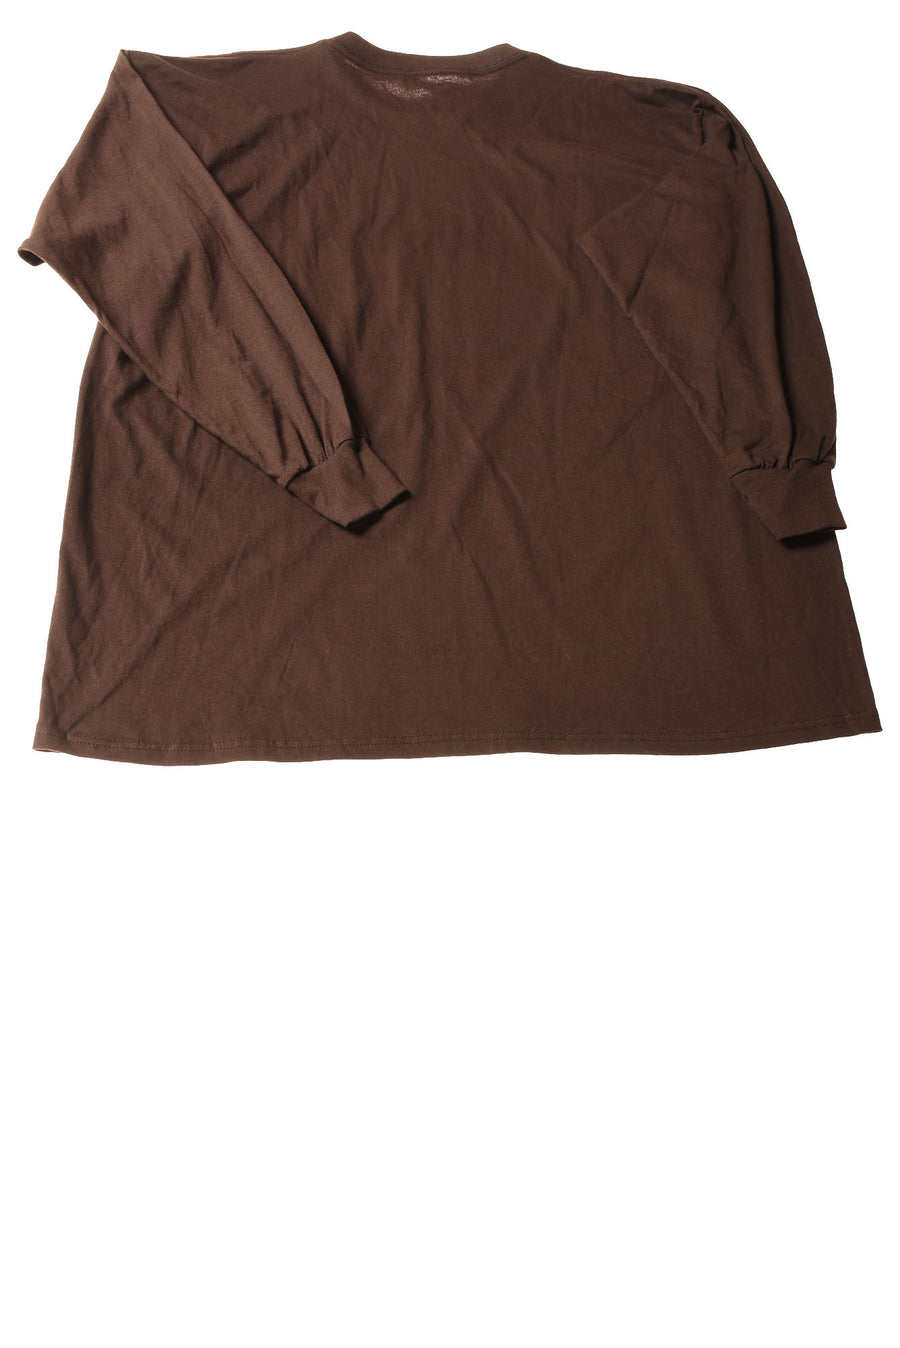 NEW NFL Team Apparel Men's Shirt 2X-Large Brown